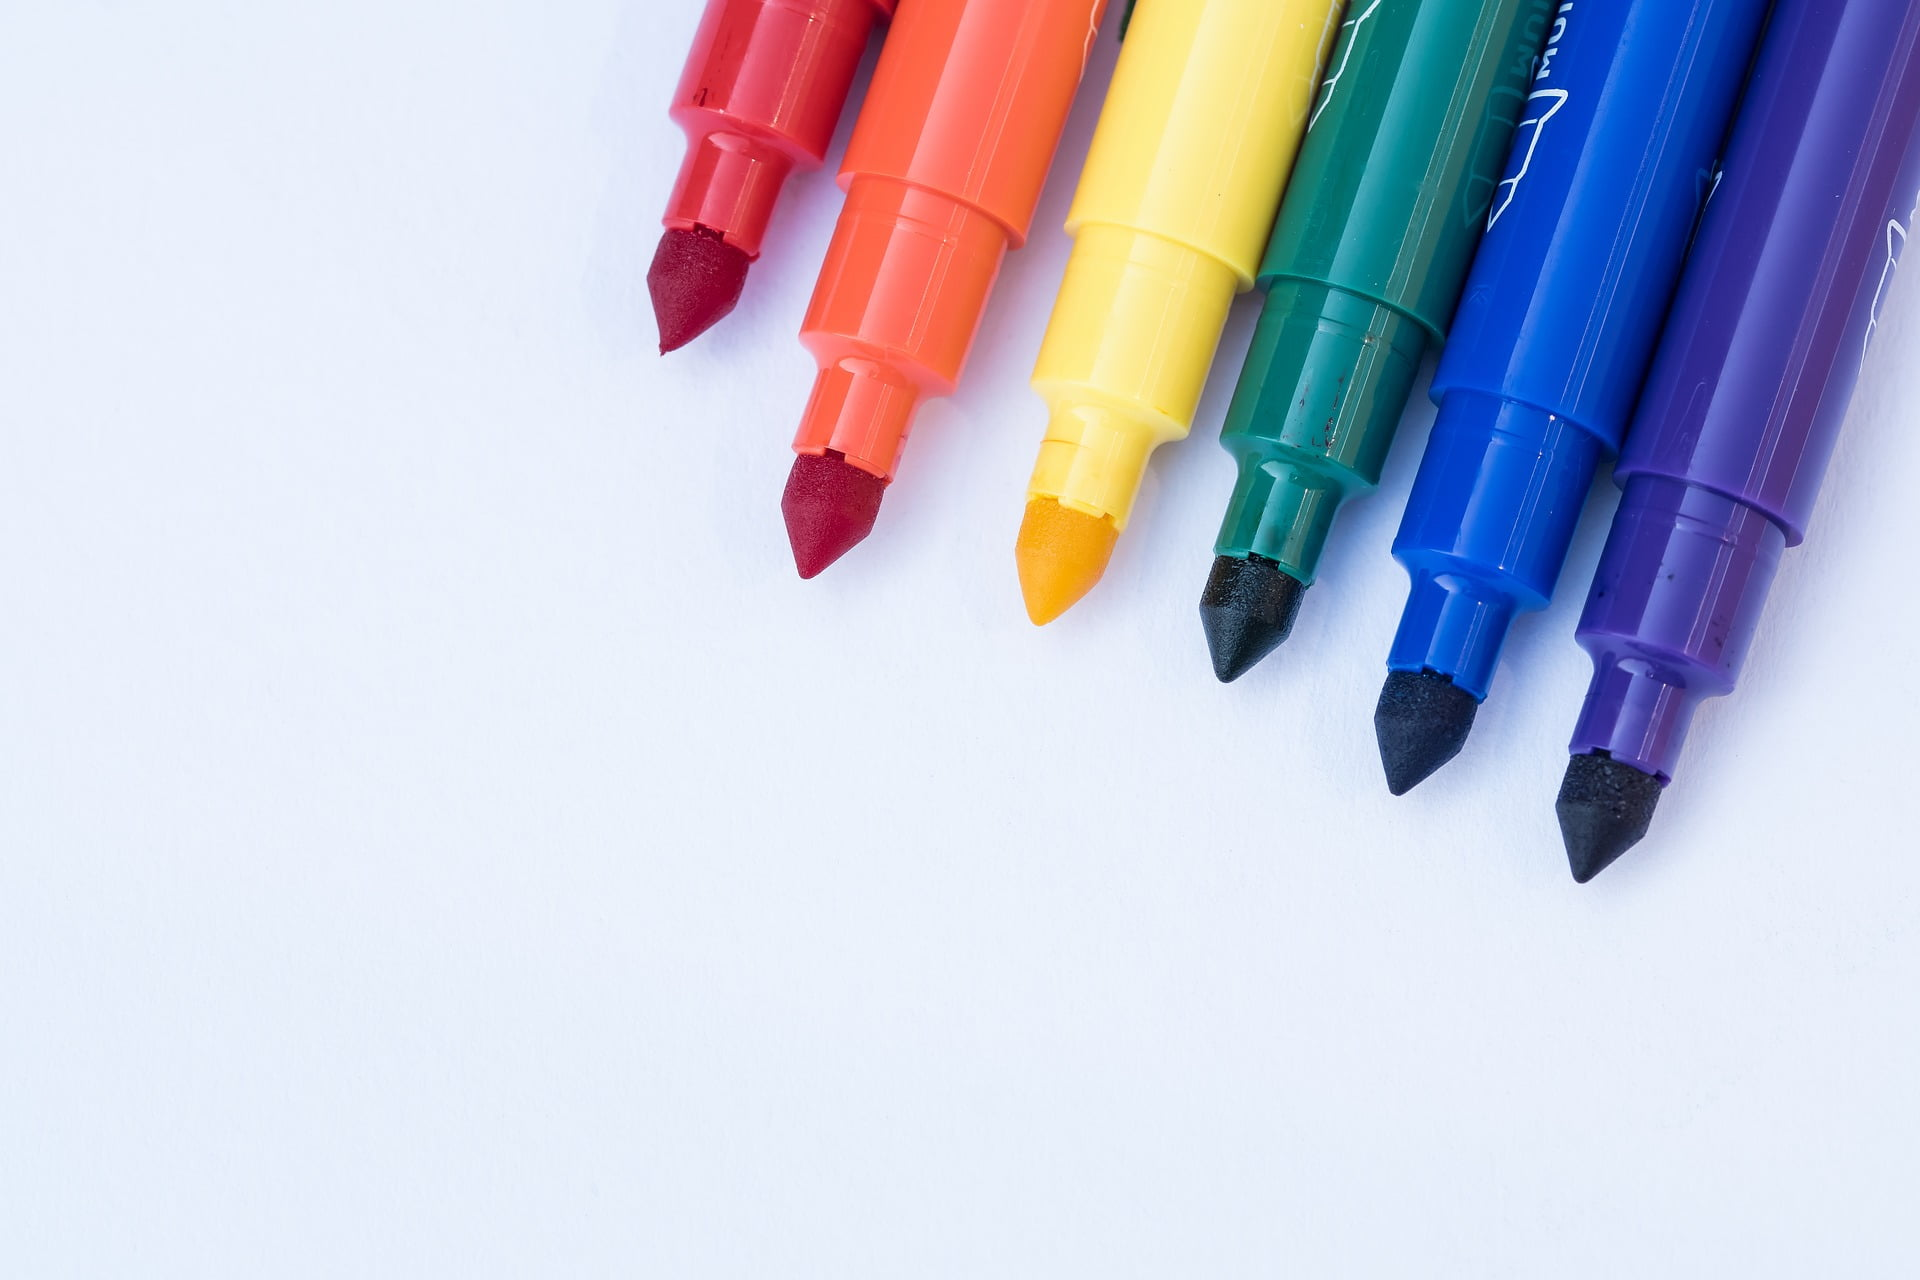 Best Paint Pens Markers For Writing And Drawing On Wood